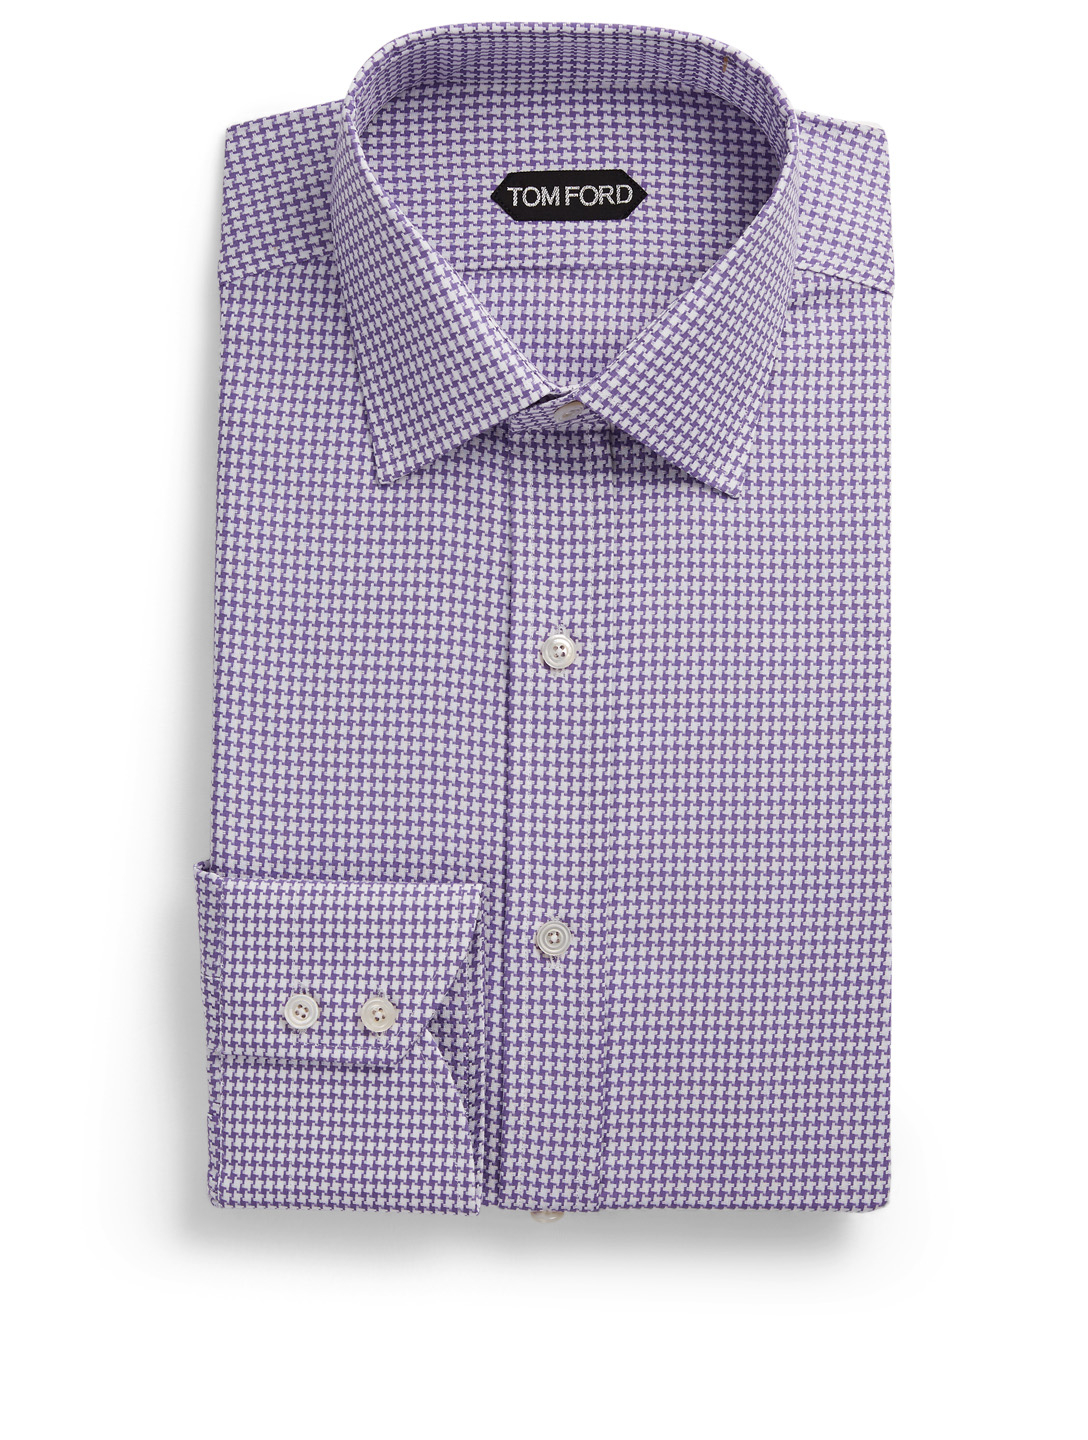 TOM FORD Dress Shirt In Houndstooth Men's Purple